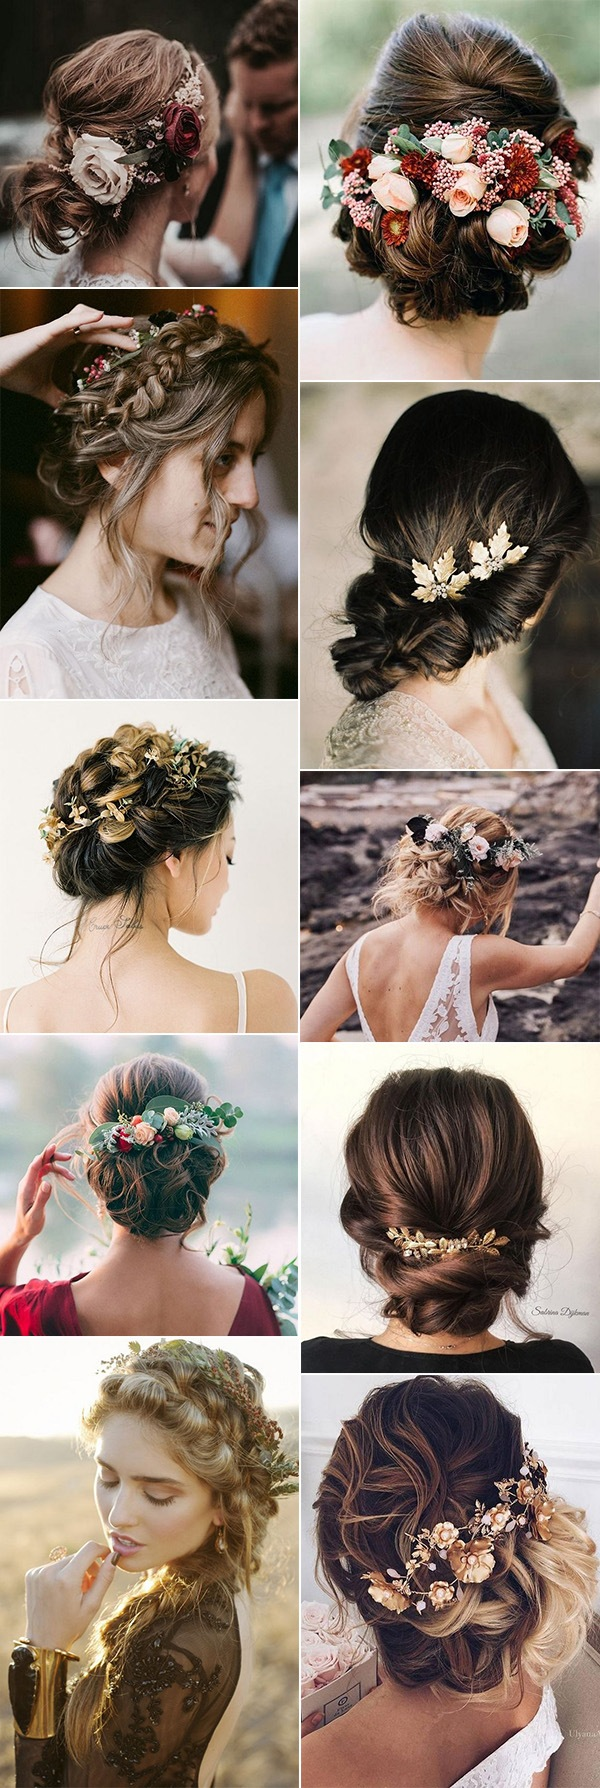 updos wedding hairstyles for fall weddings